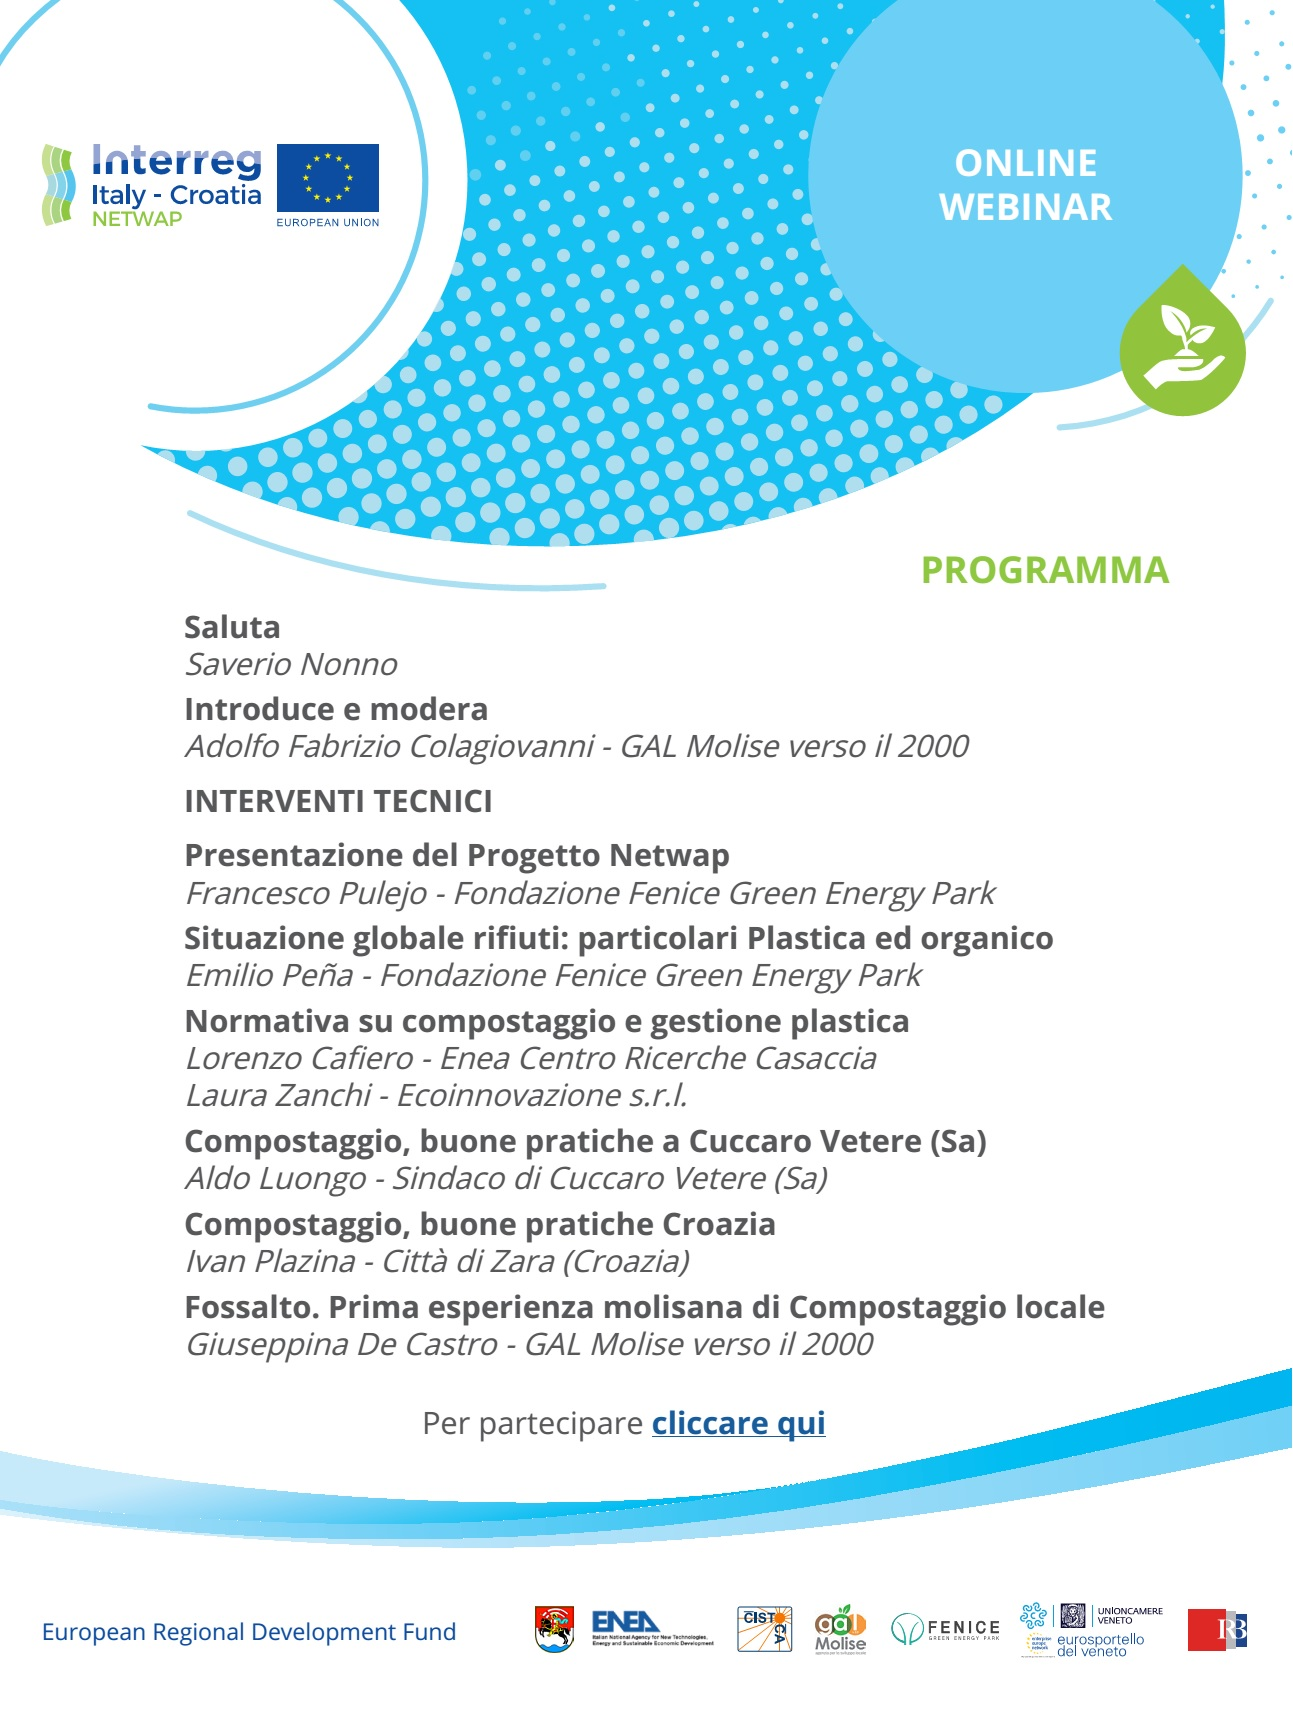 The sustainable management of plastic and organic waste in the municipalities of inland areas